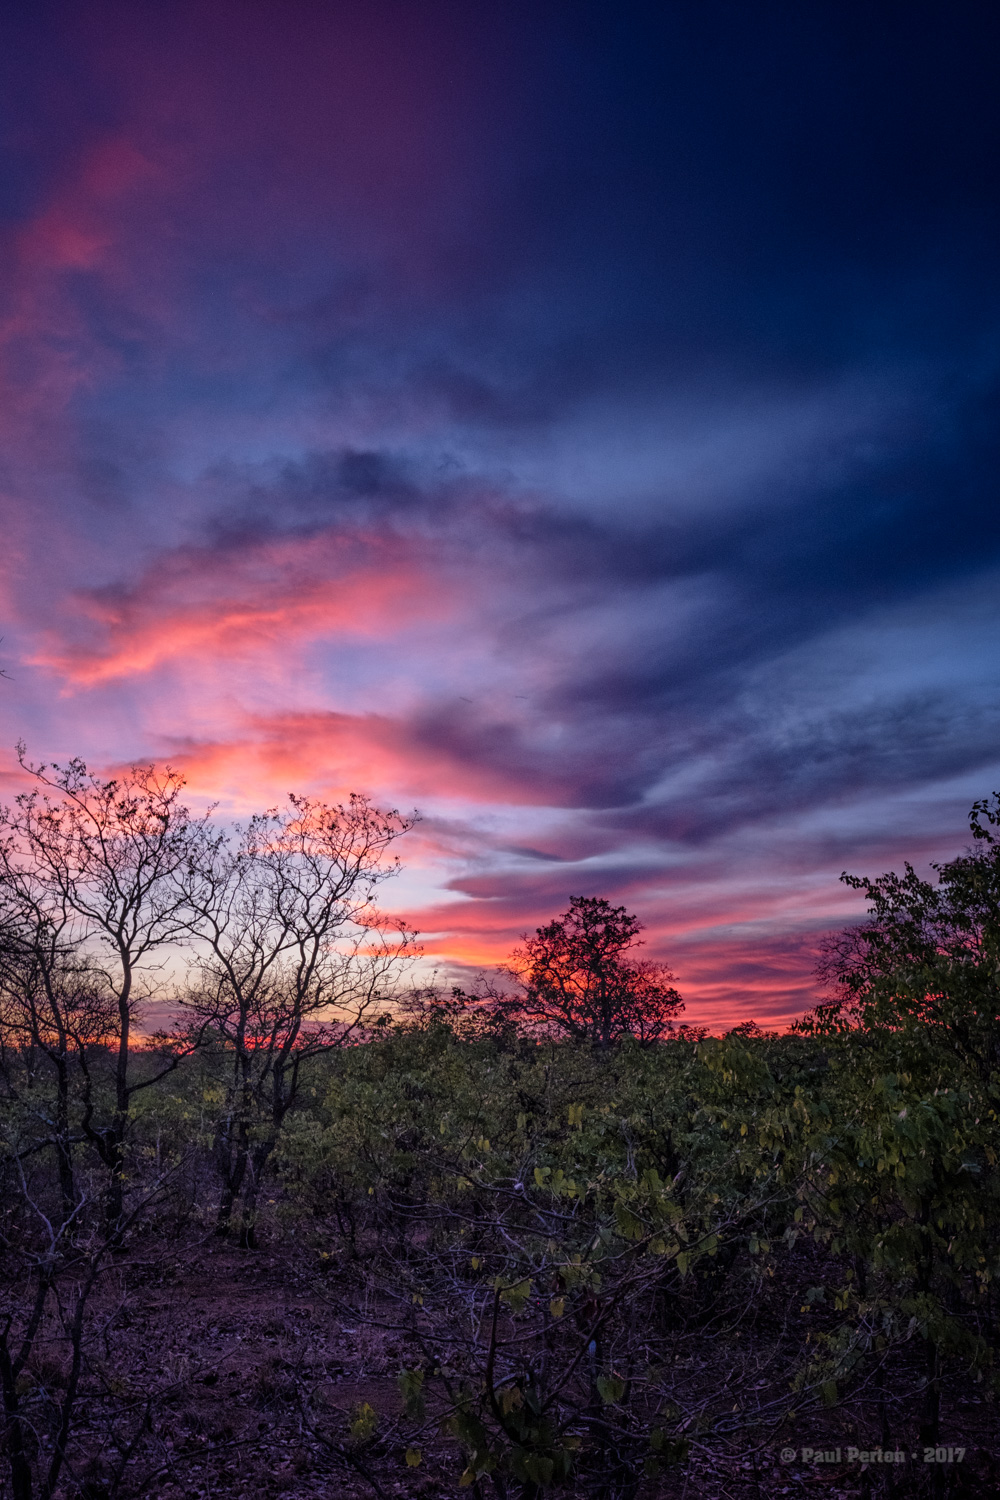 Sunrise, Kruger National Park - this is just extraordinary light, not HDR